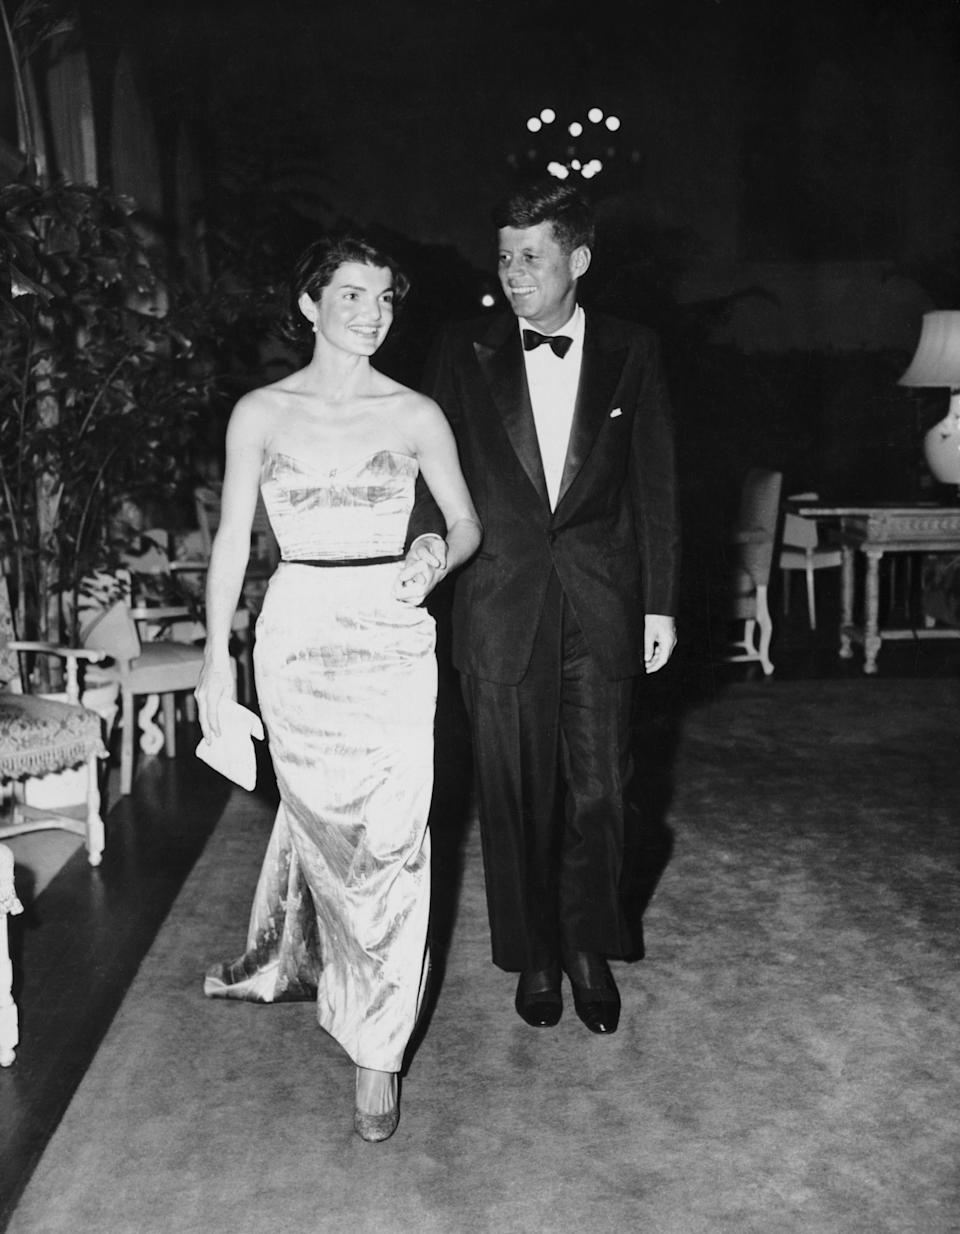 "<p>Former U.S. President John F. Kennedy and Jacqueline Kennedy Onassis captivated the world with their good looks and charm. The ""Camelot"" era of the White House was filled with hope and the promise of change but ultimately ended in tragedy for the picture perfect Kennedy family. <em>(Image via Getty Images)</em></p>"